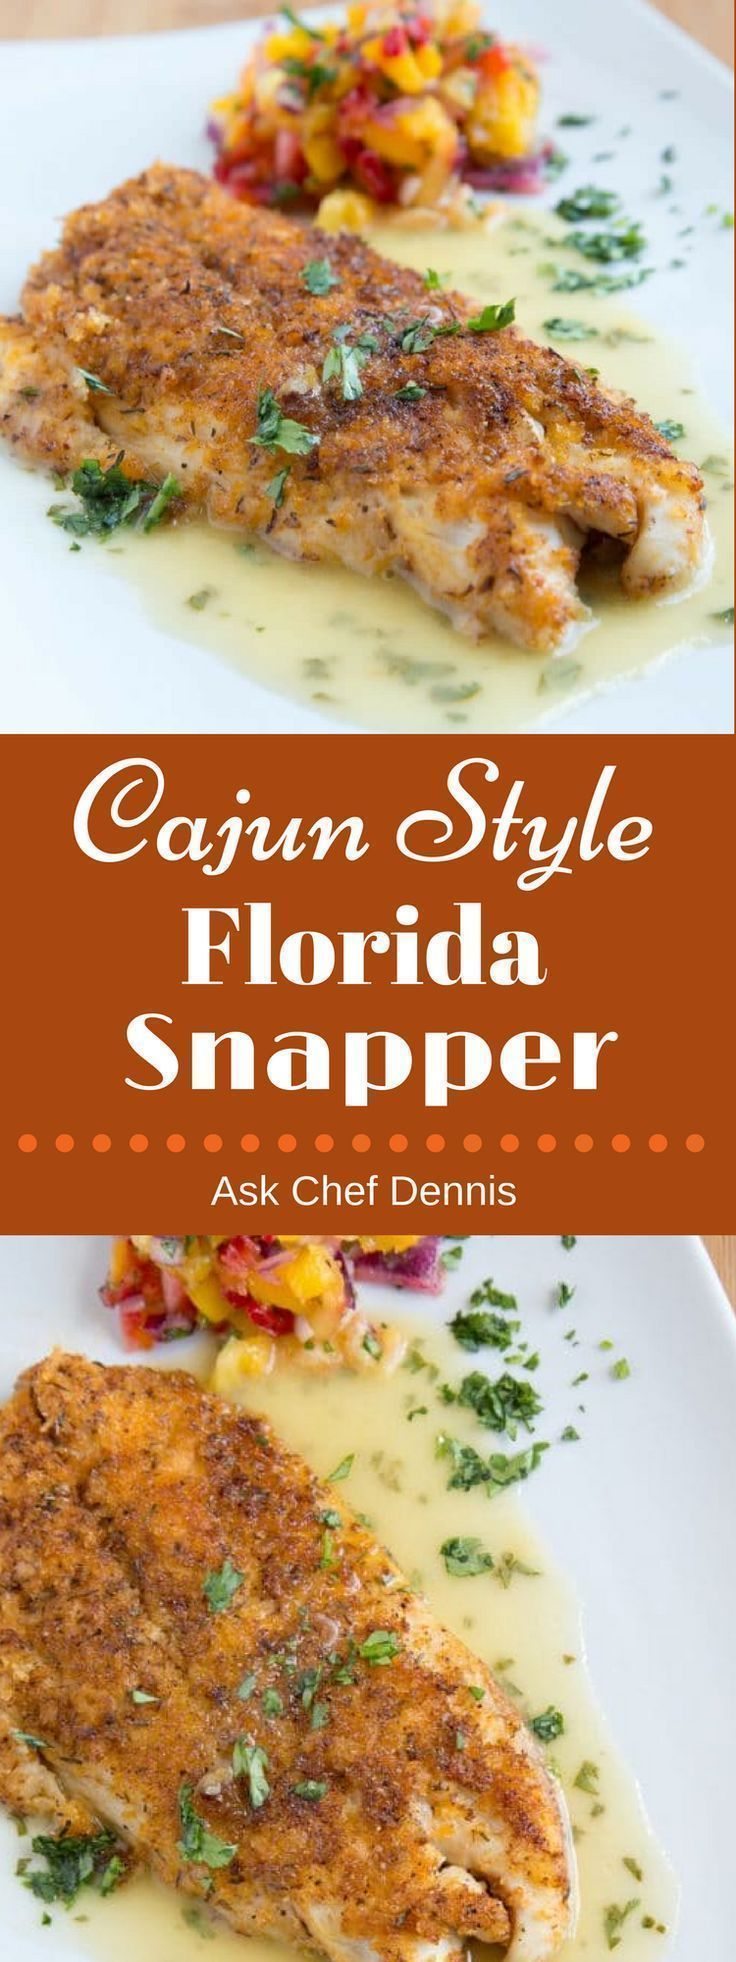 Cajun Style Florida Snapper with a Lime Margarita Sauce - Chef Dennis